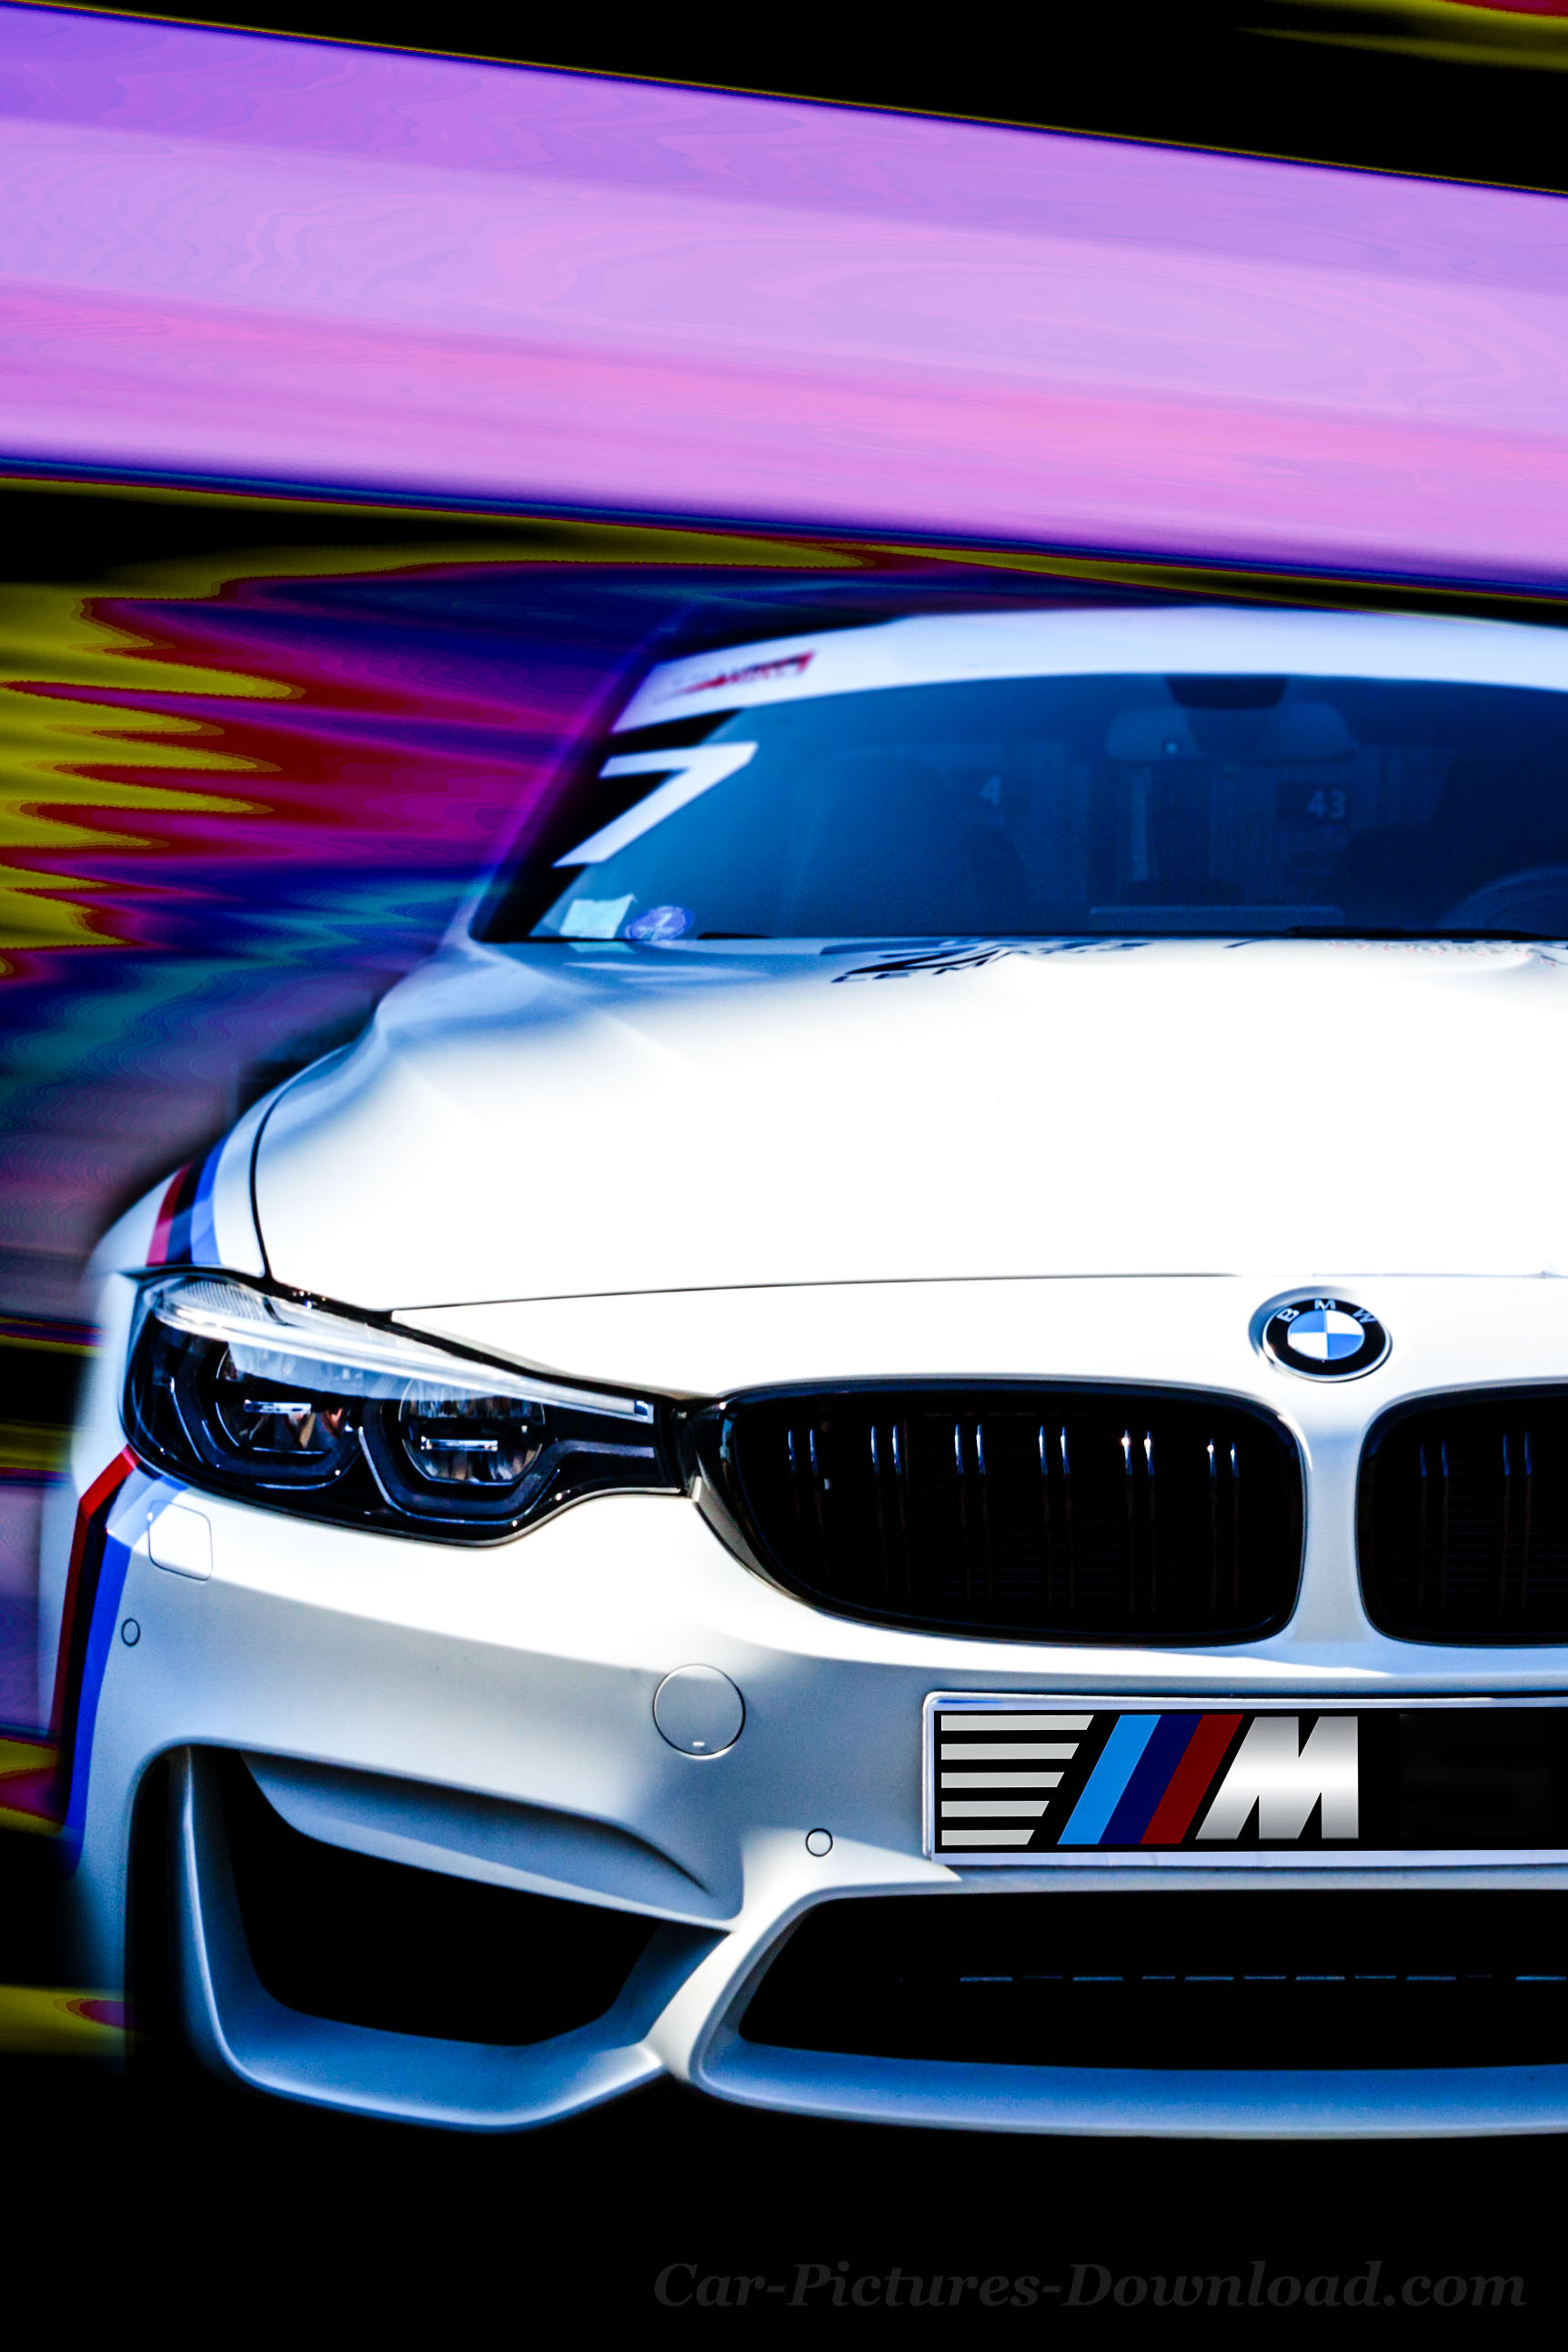 White Bmw M3 Sports Car Wallpaper Phone Iphone Bmw Wallpaper White 1724x2586 Download Hd Wallpaper Wallpapertip